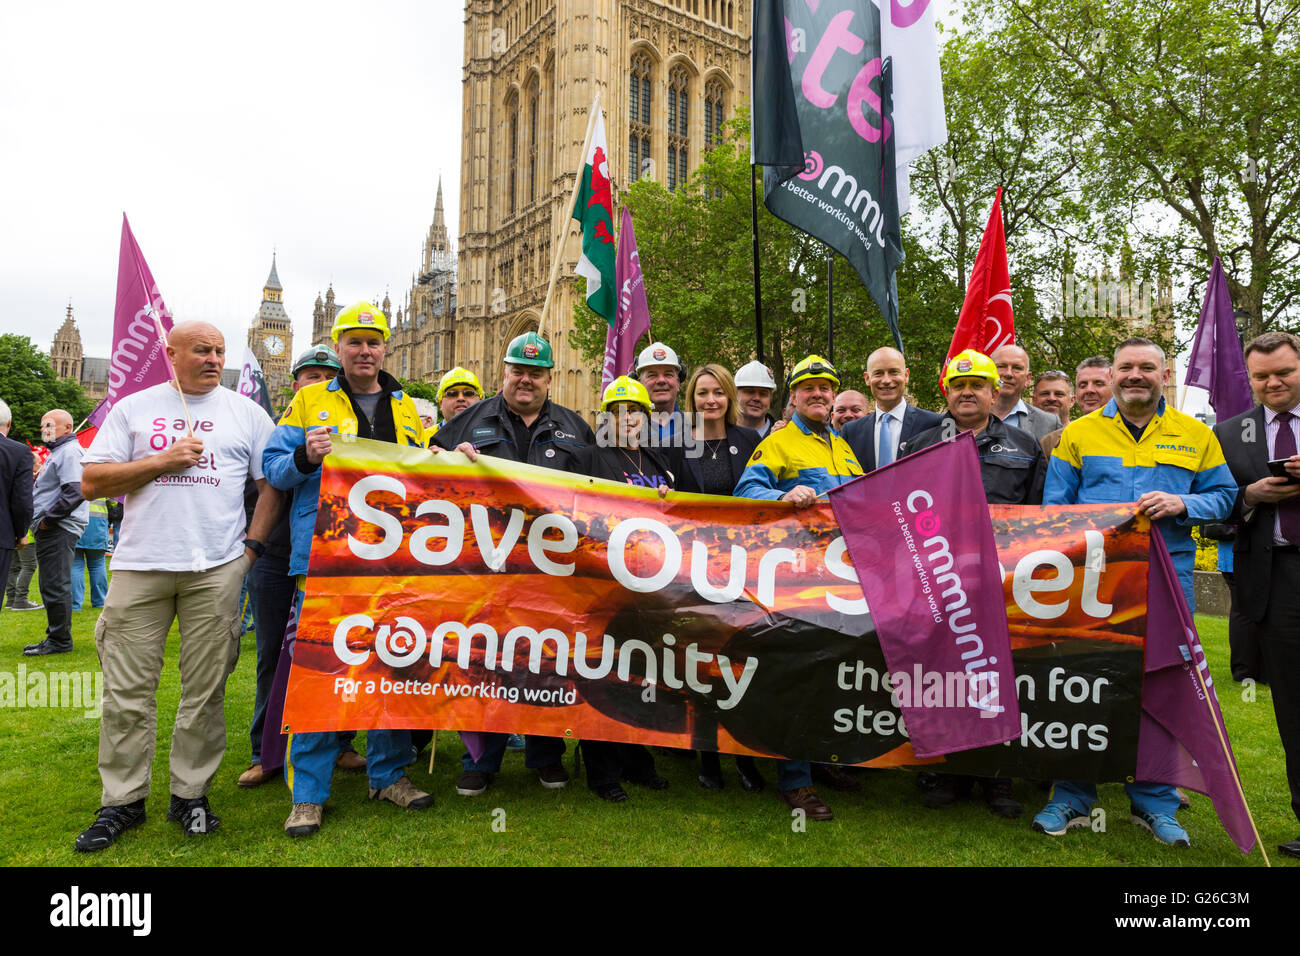 Westminster, London, UK. 25th May 2016. May 25th. GMB, as well as other steel industry unions, steel workers and - Stock Image